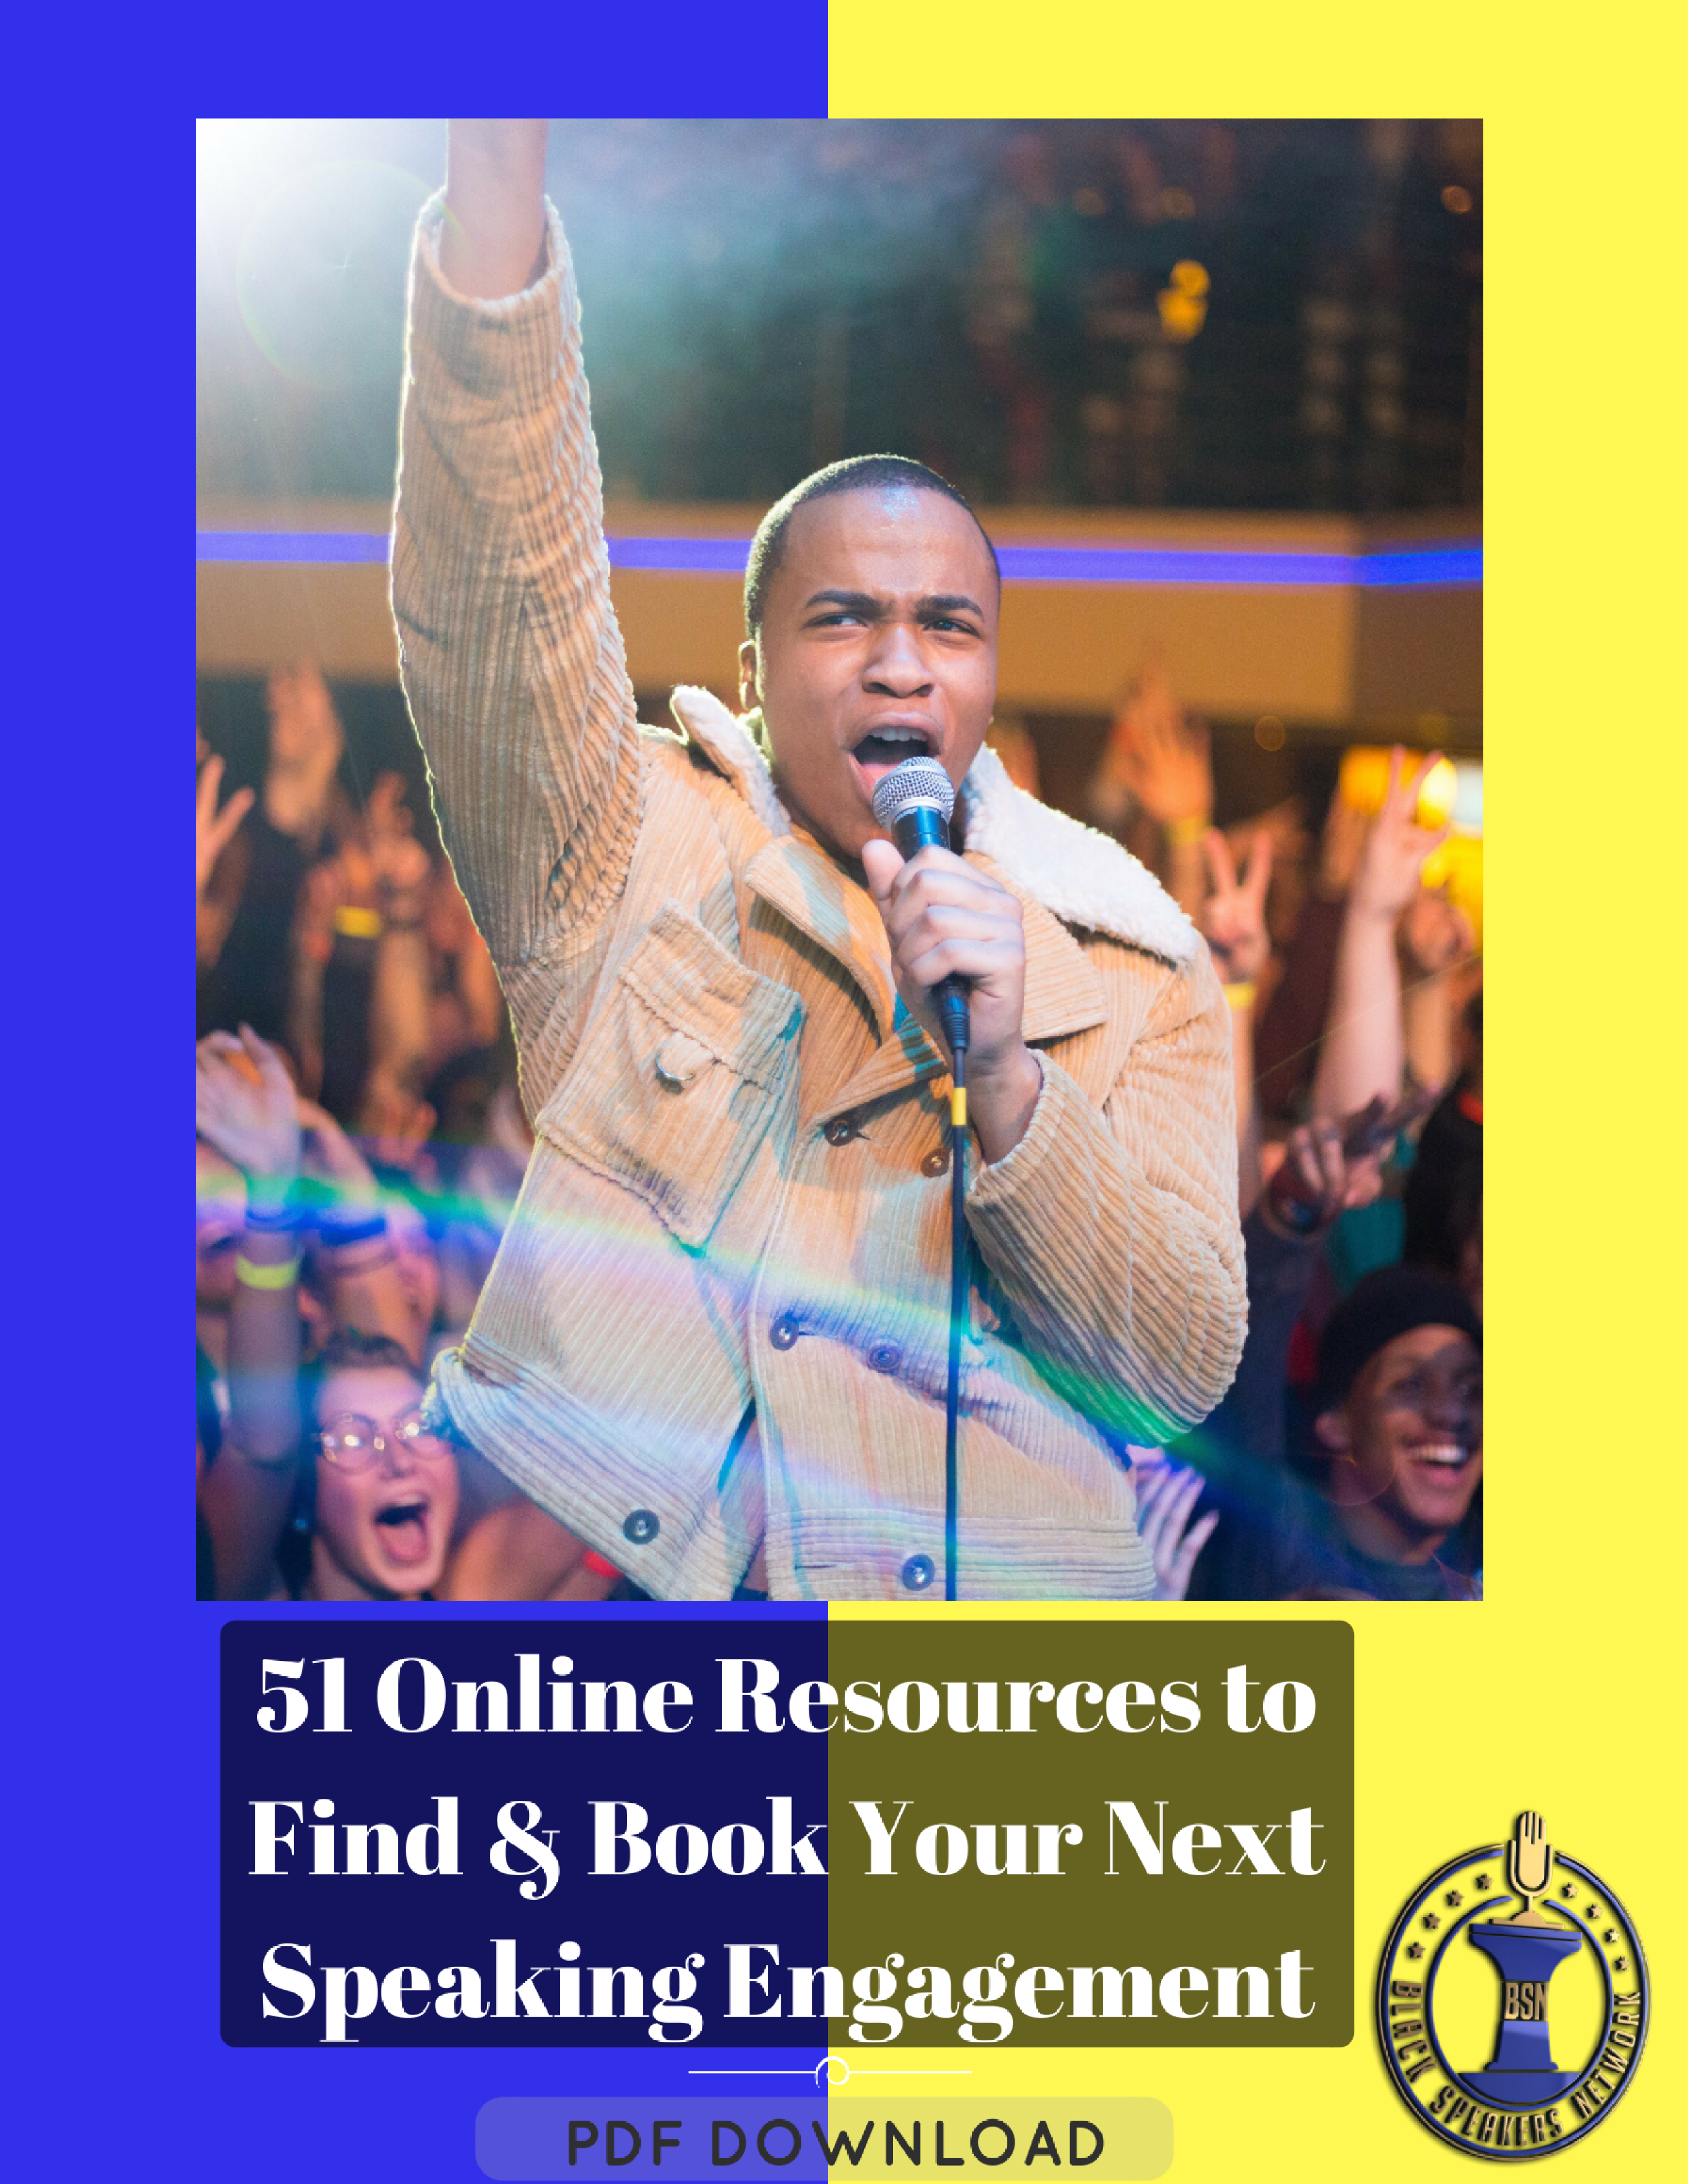 Stop Struggling and Start Speaking! - If your speaking calendar is looking kind of light, then you have the tool to fix that today. The 51 Online Resources To Find and Book Your Next Speaking Engagement is a comprehensive 20-page PDF Resource Guide created for you with the goal to completely remove the excuse of not knowing where to look for speaking engagements.